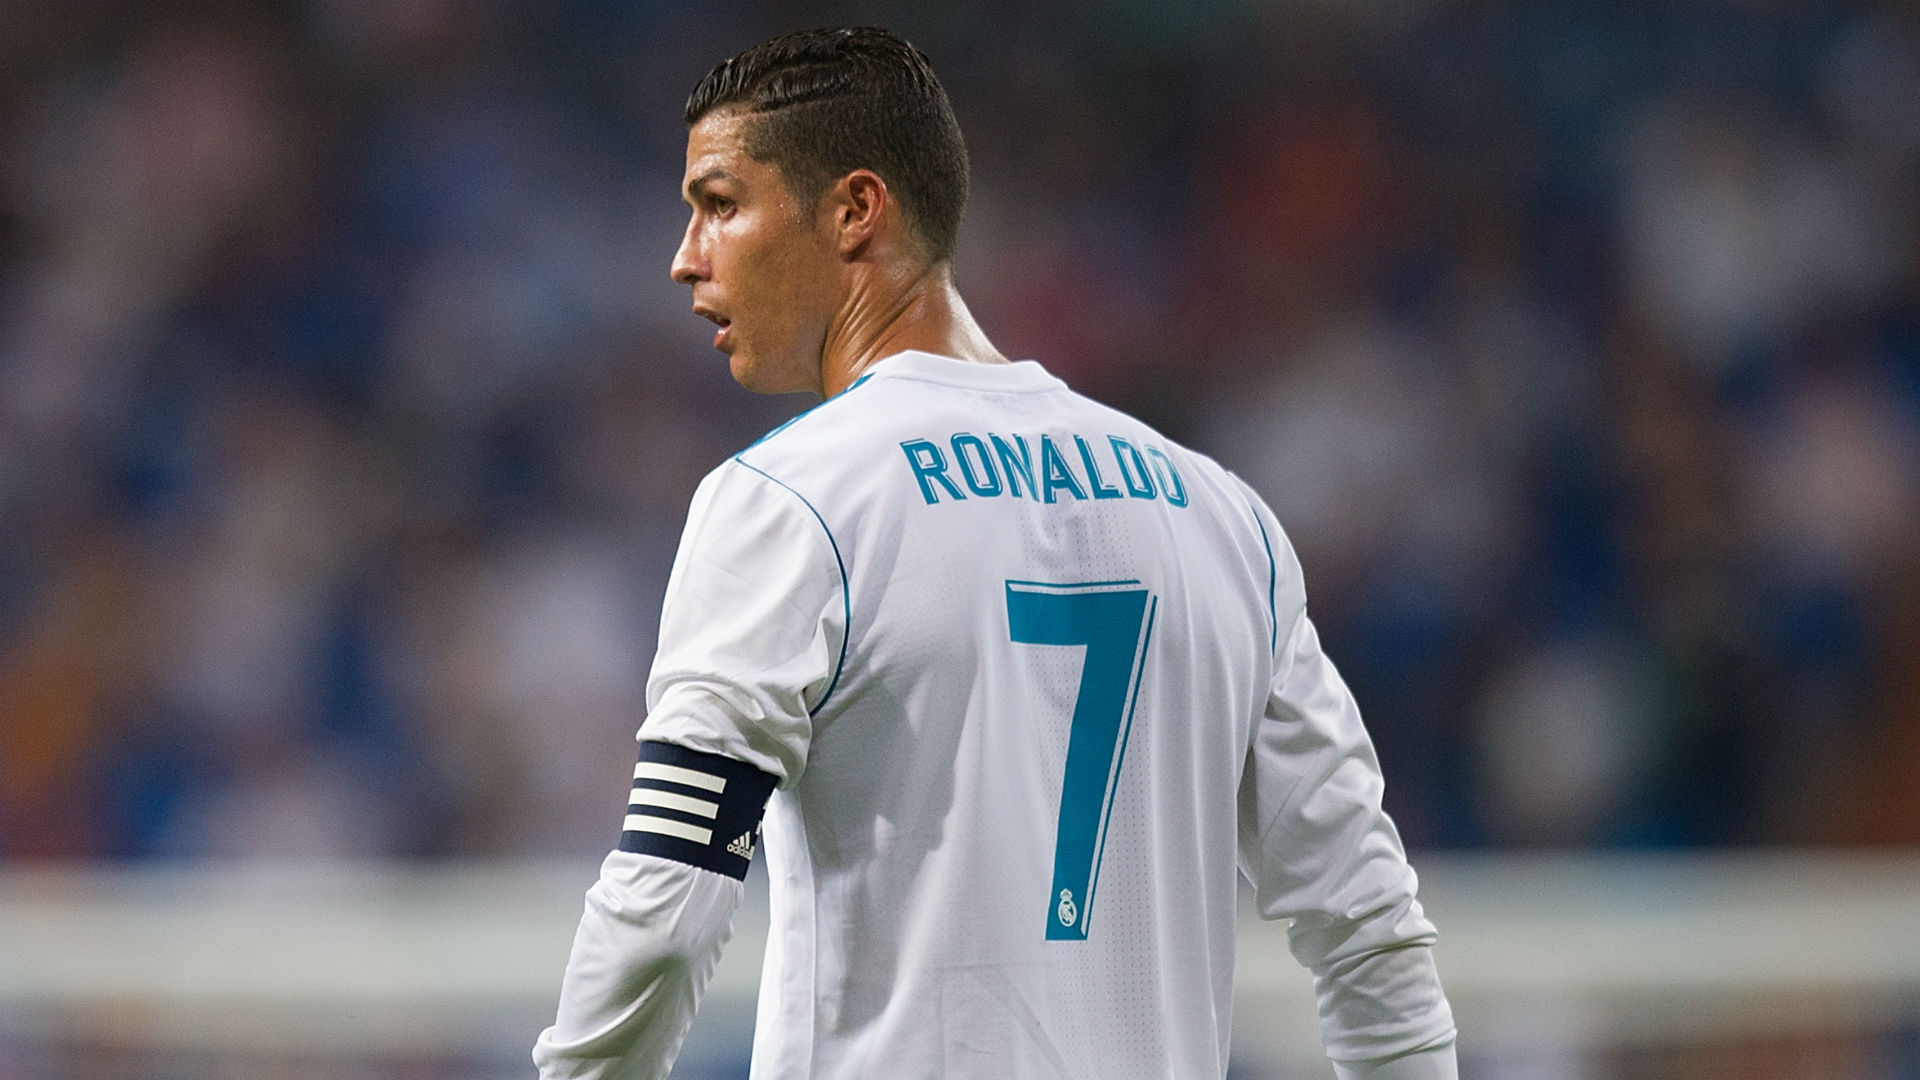 Ronaldo set to return against Real Betis after five-game ban